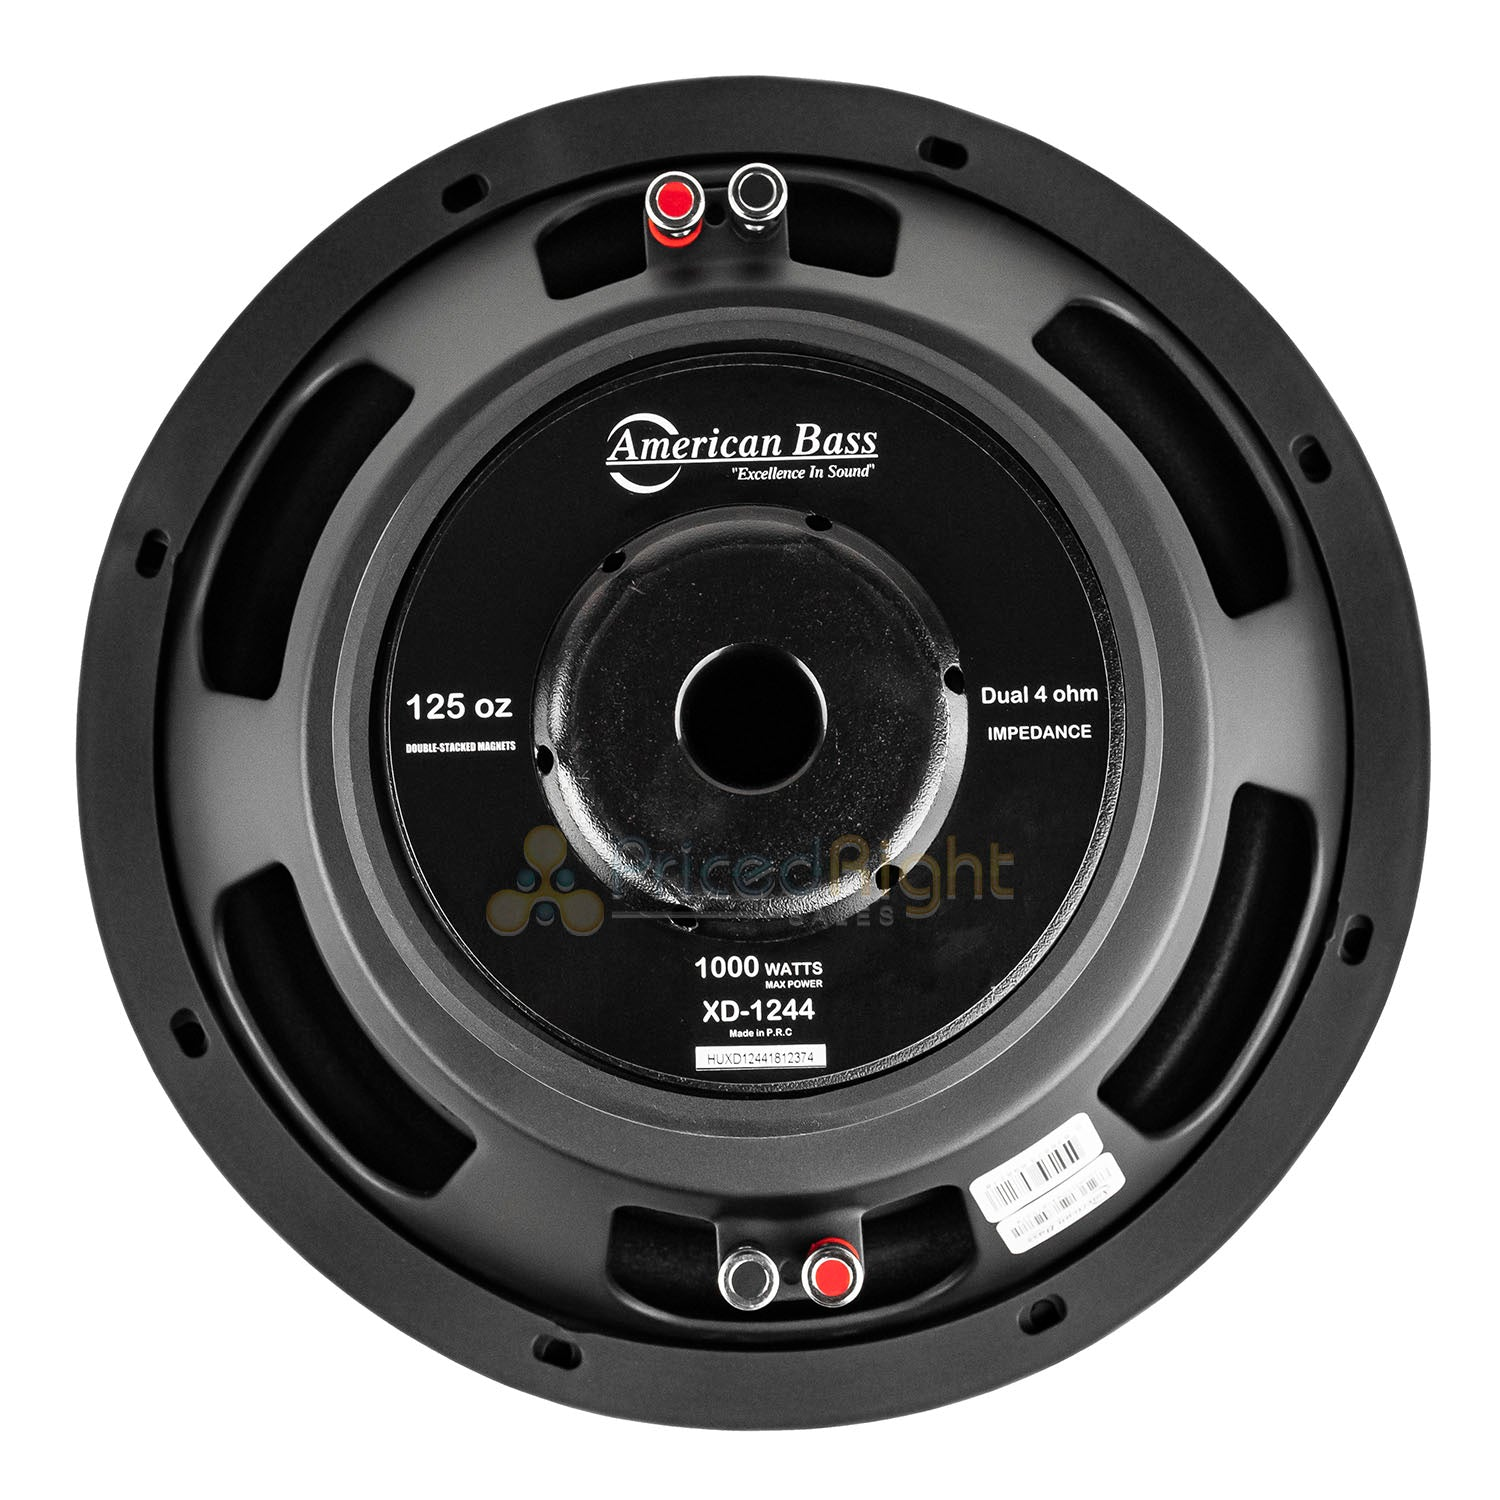 "2 Pack American Bass XD-1244 12"" Subwoofer Dual 4 Ohm 1000 Watts Max Car Audio"